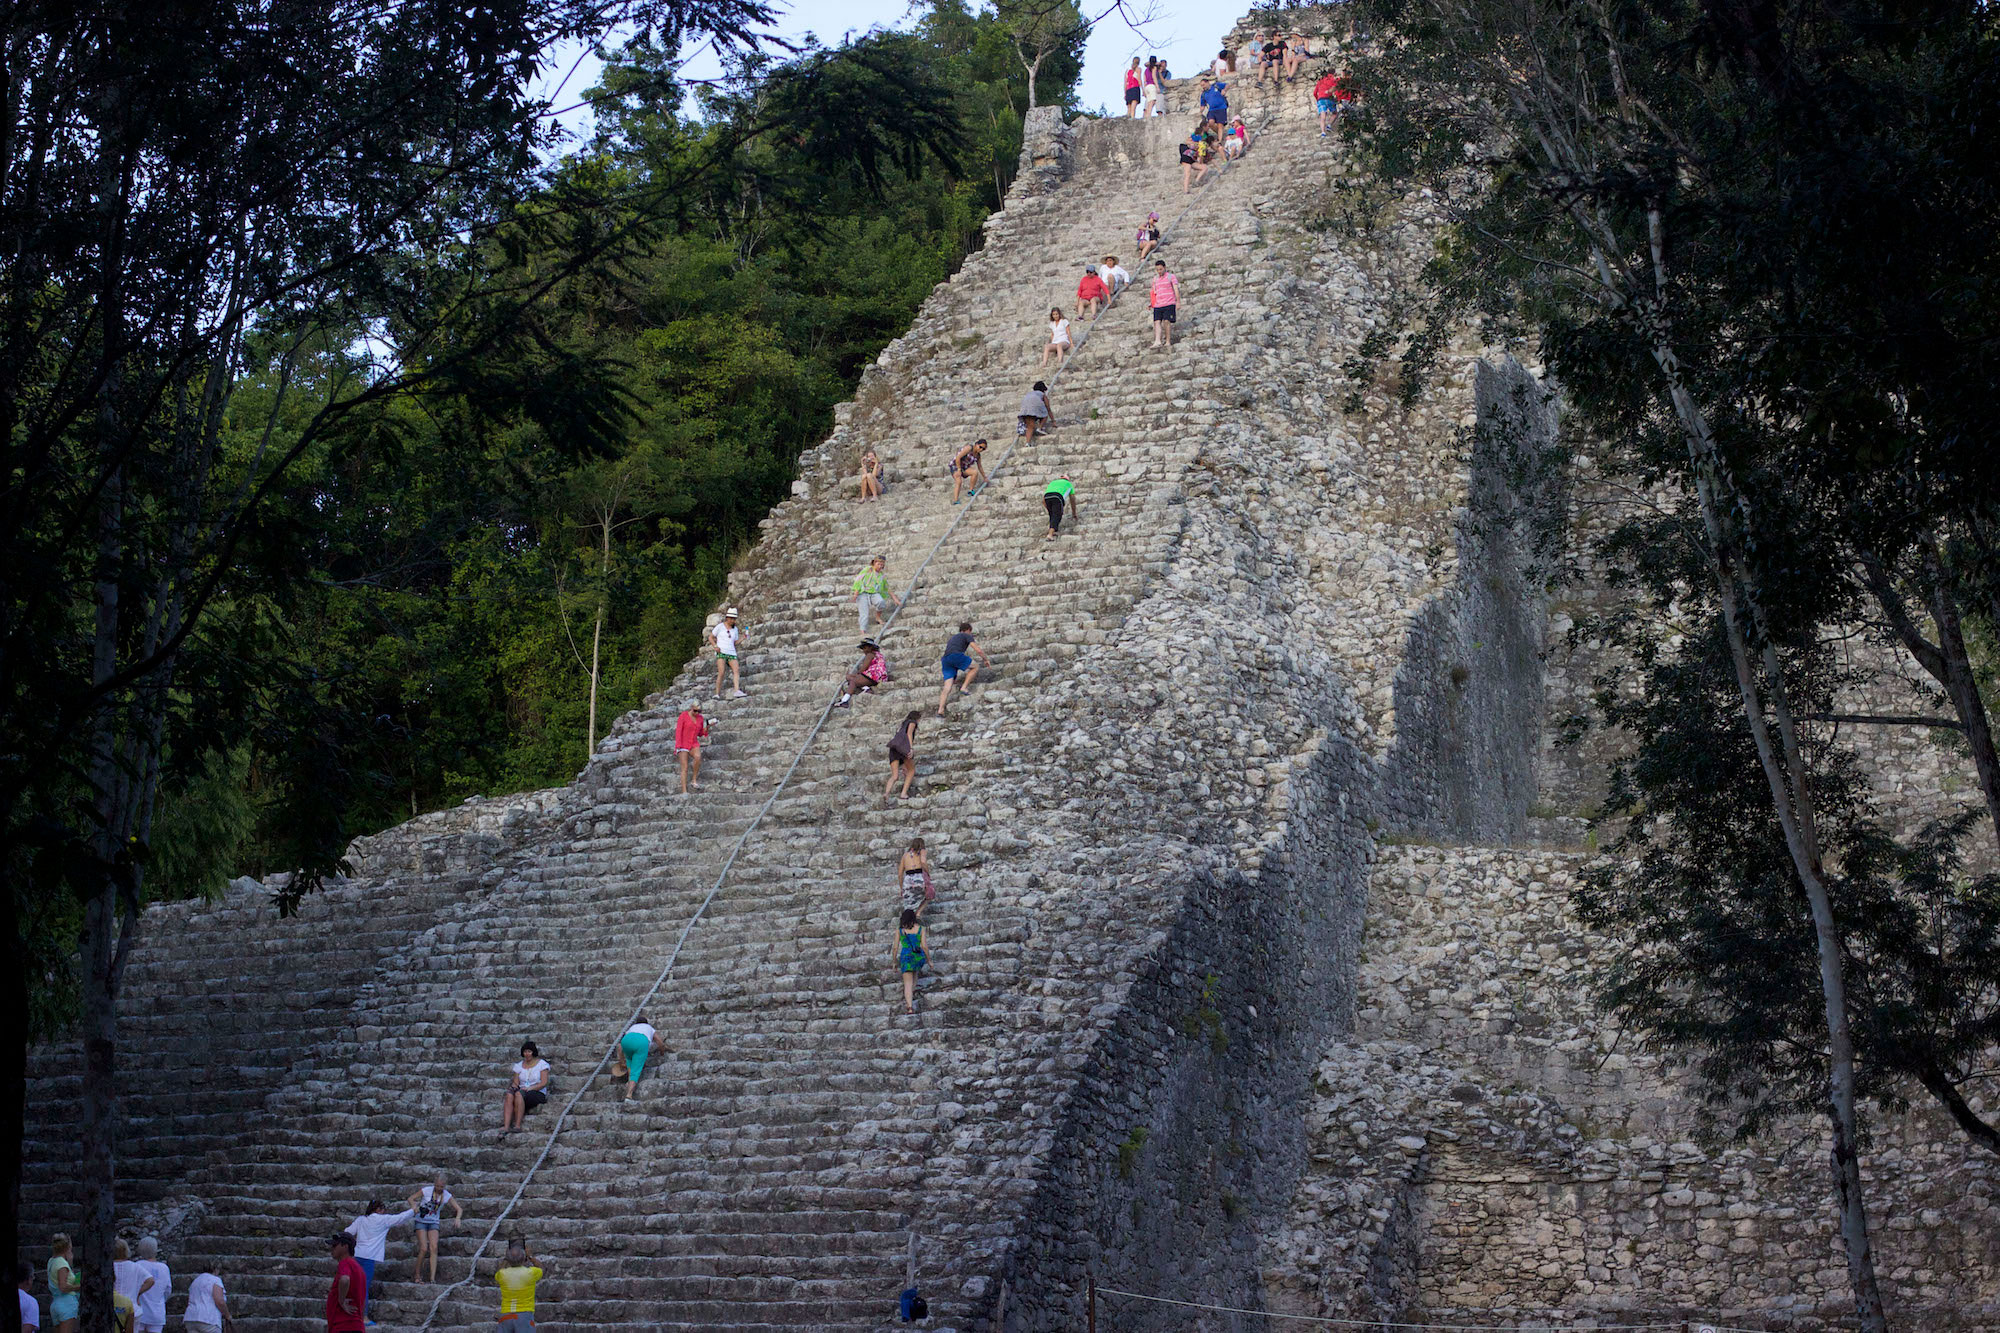 Maya_Luxe_Luxury_Villa_Rentals_Experiences_Magazine_The_Queens_of_Coba_Atop_The_Tallest_Temple_3.jpg